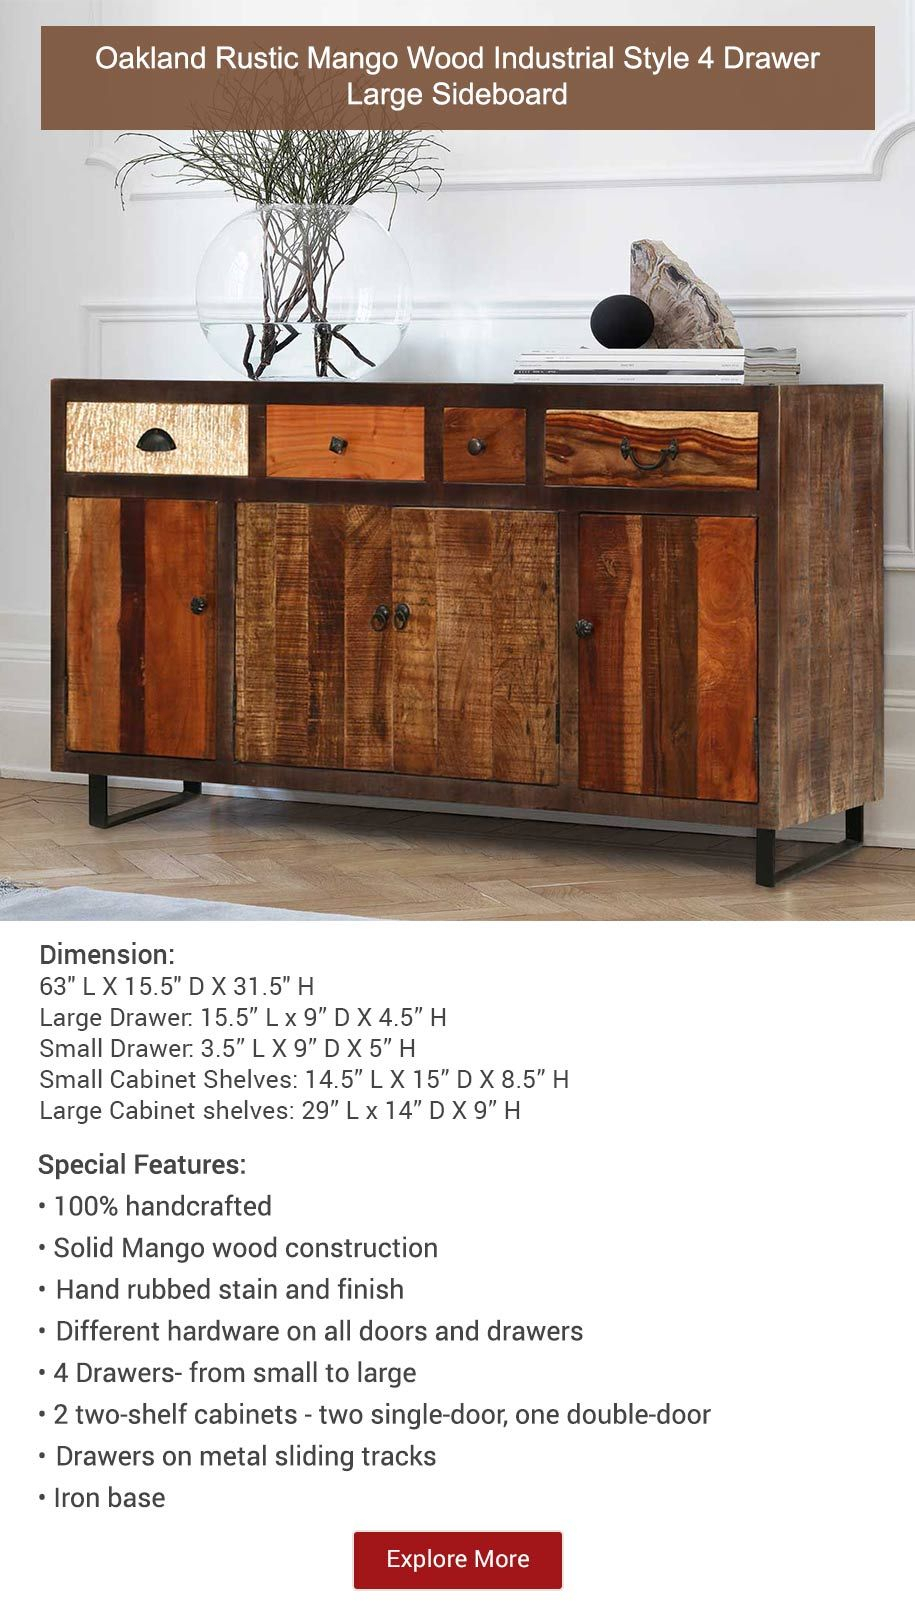 Oakland Rustic Mango Wood 4 Drawer Large Sideboard | Buffets Intended For Industrial Style 3 Drawer Buffets (View 24 of 30)